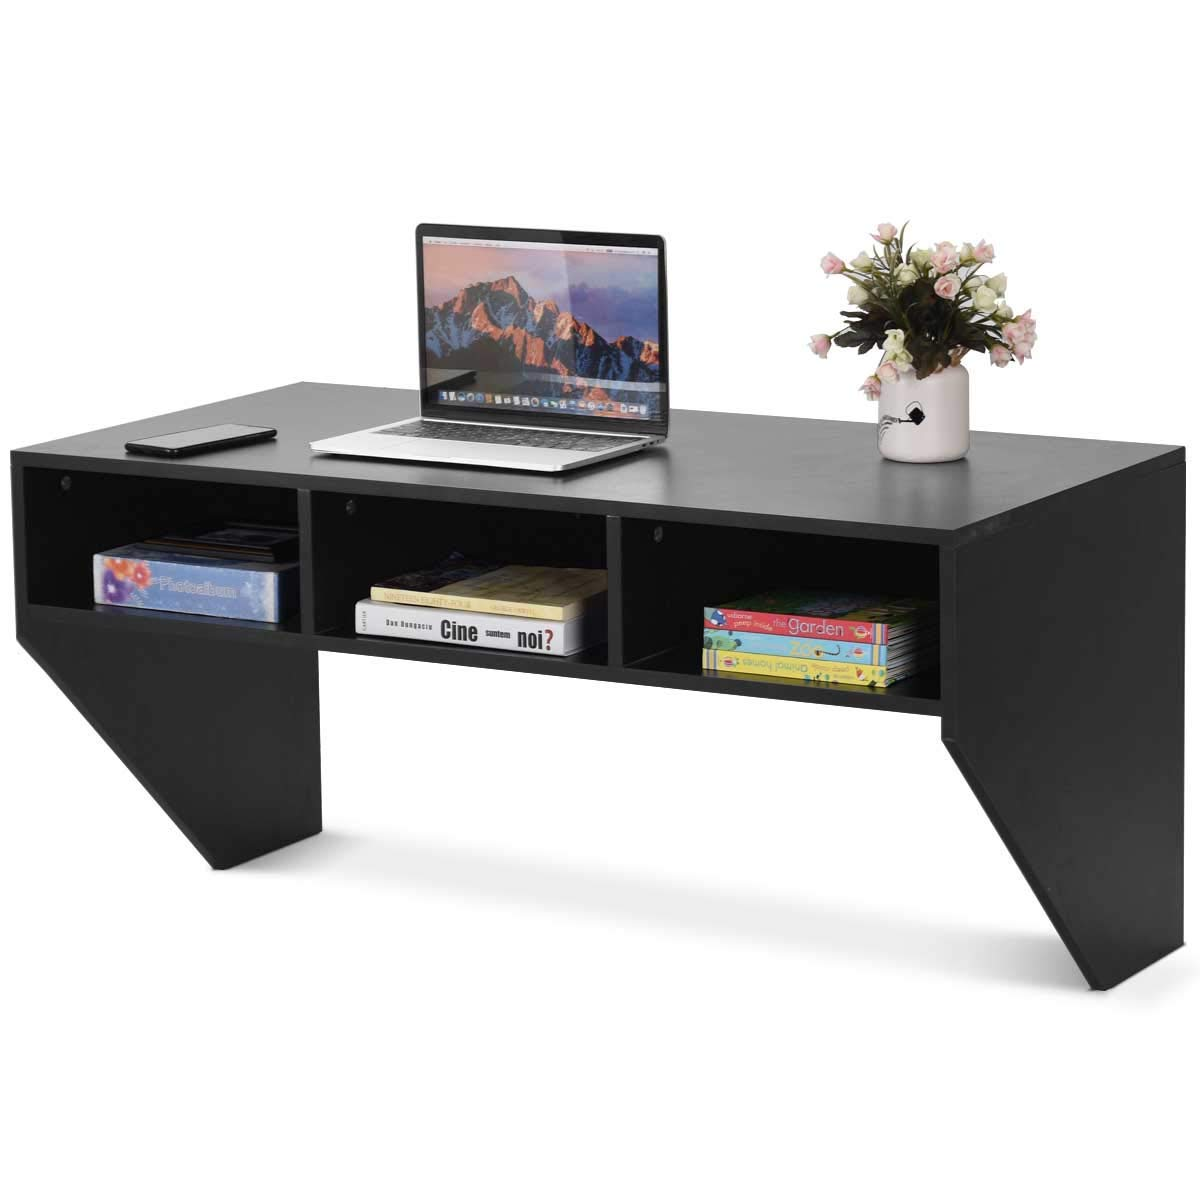 black wall mounted floating desk console shelf computer modern mount storage kitchen dining ikea box shelves white metal shelving unit portable island bar television component